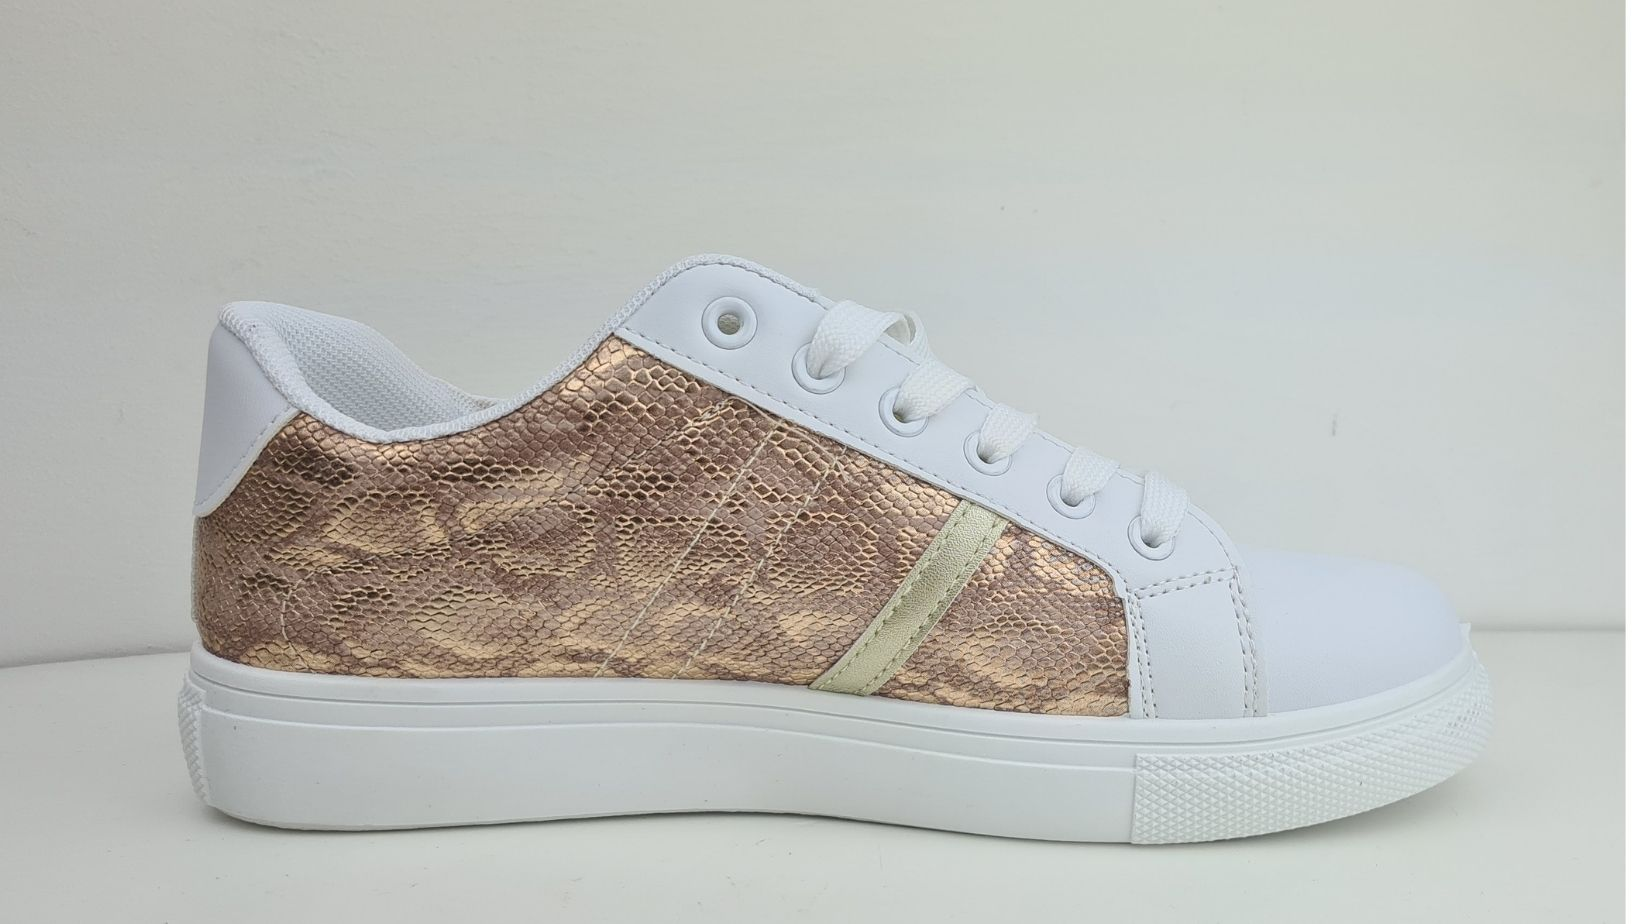 loungewear shoes white trainers womens sneakers paco